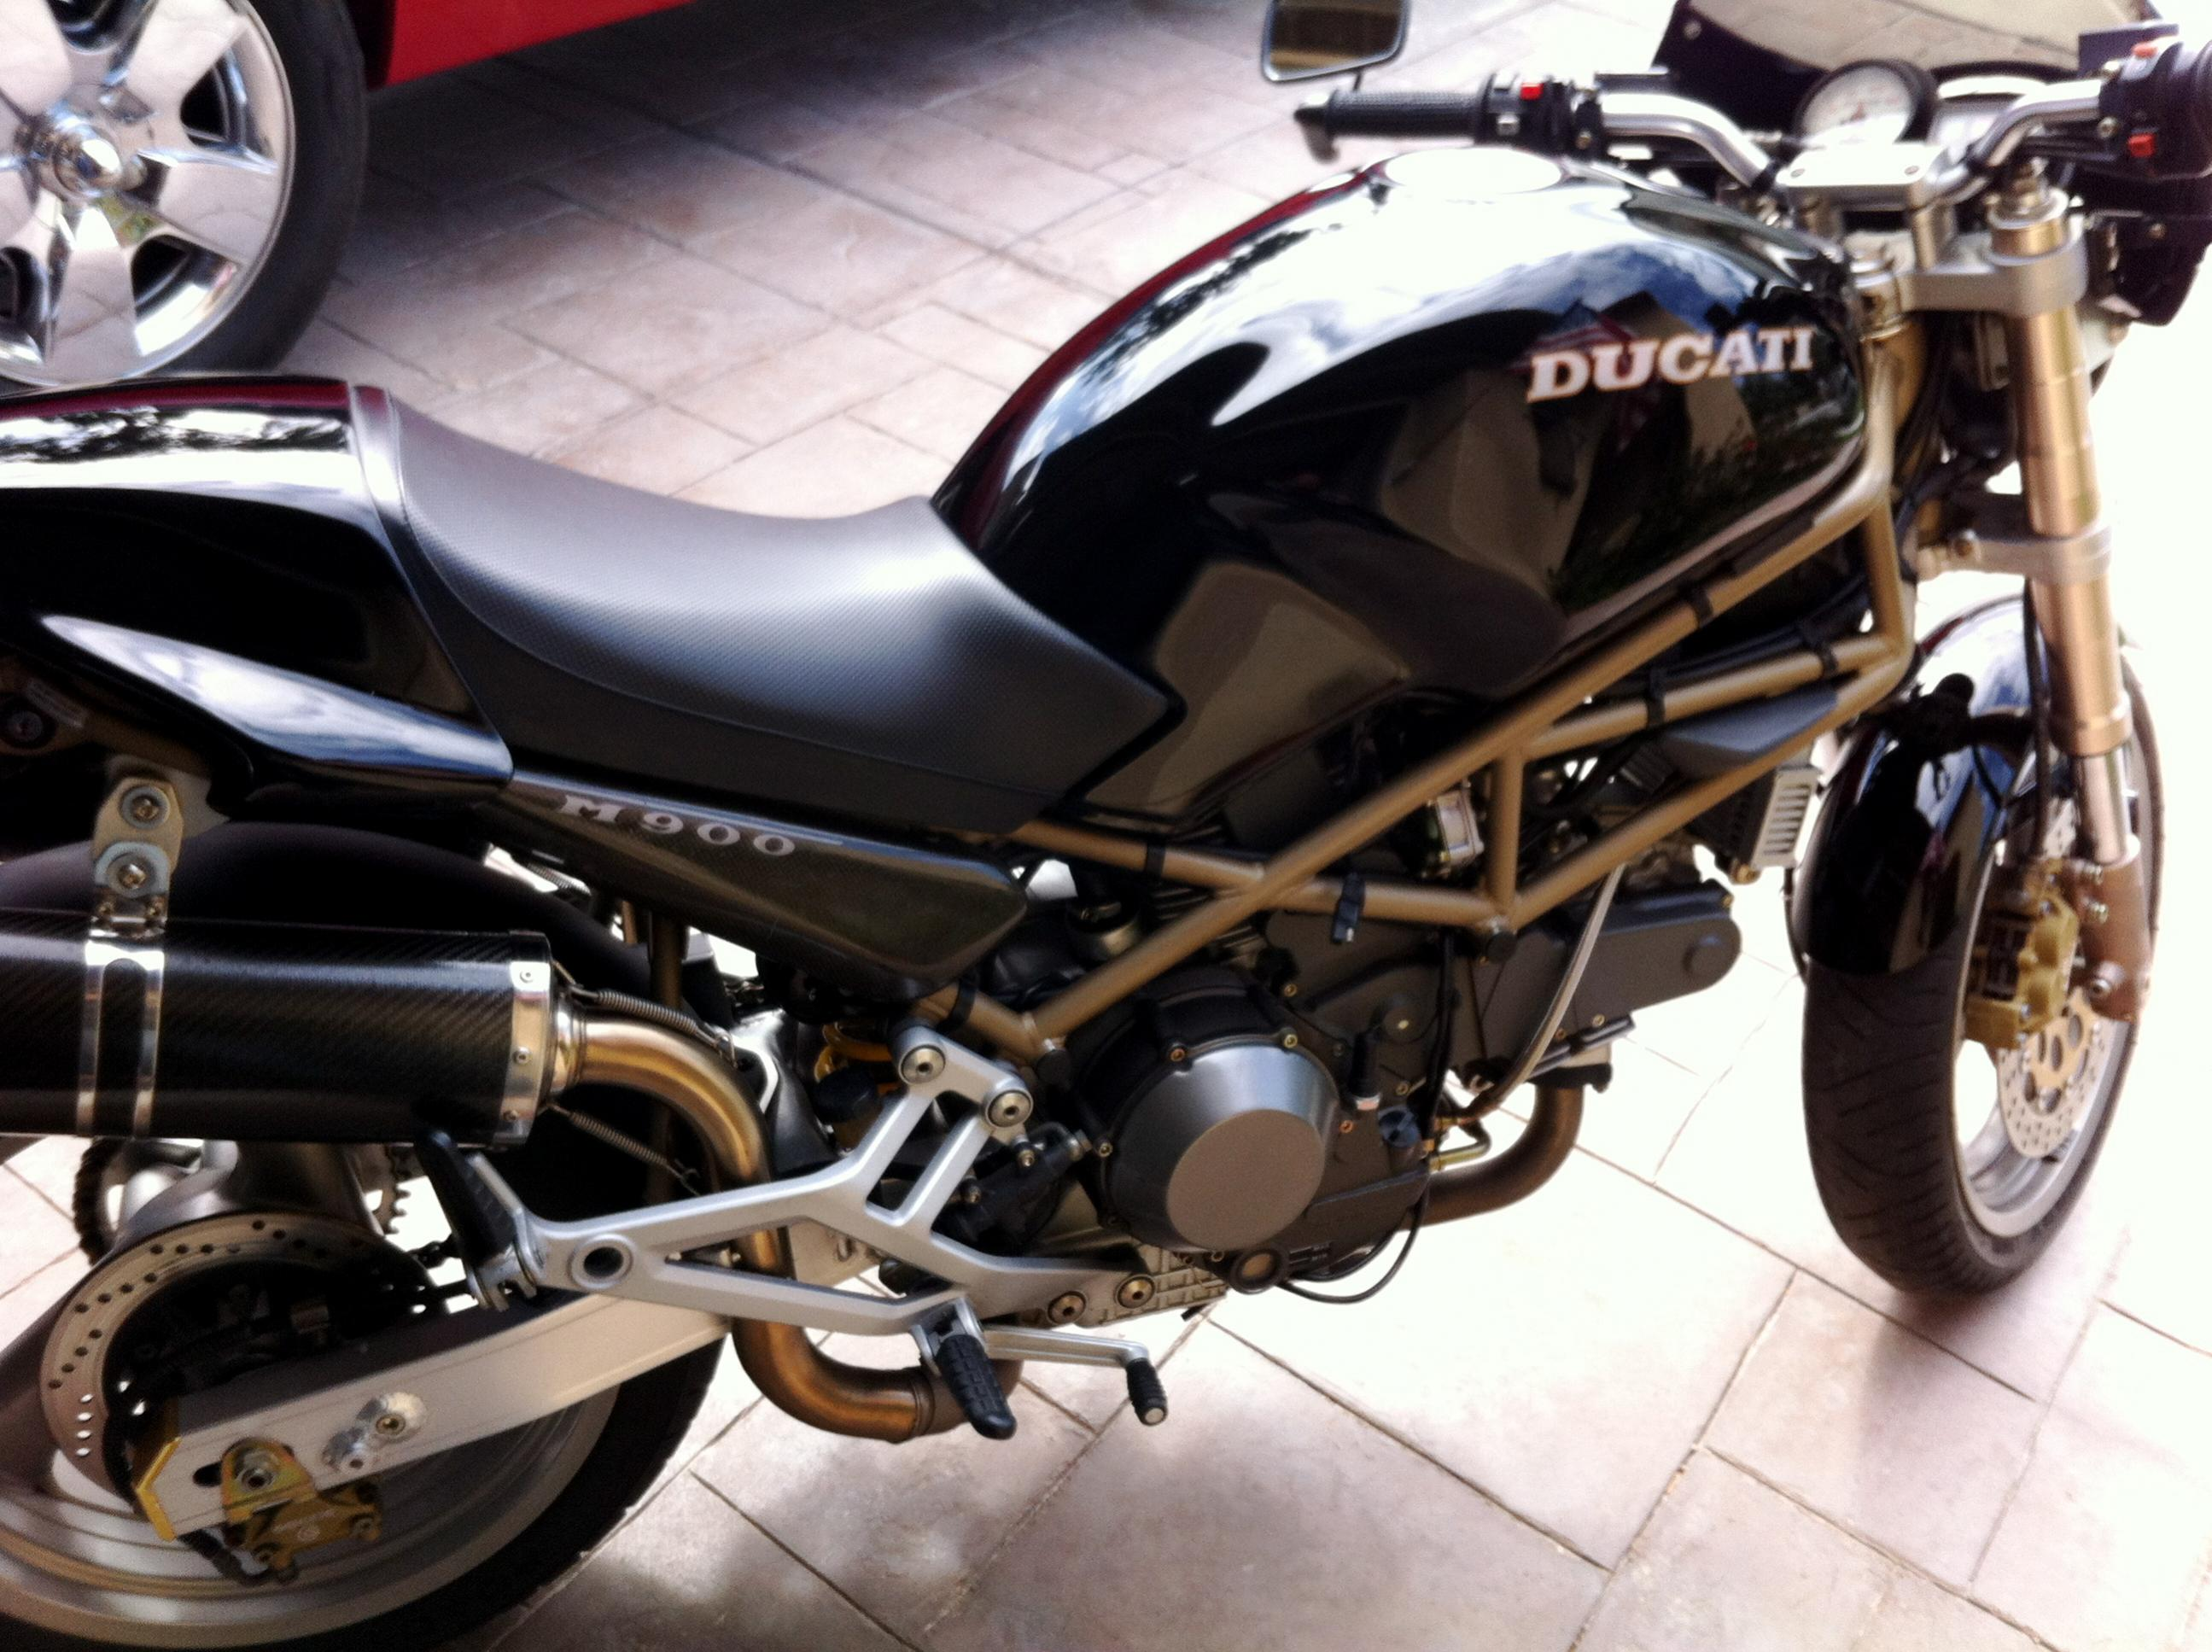 Ducati 900 Monster S 1998 images #78783